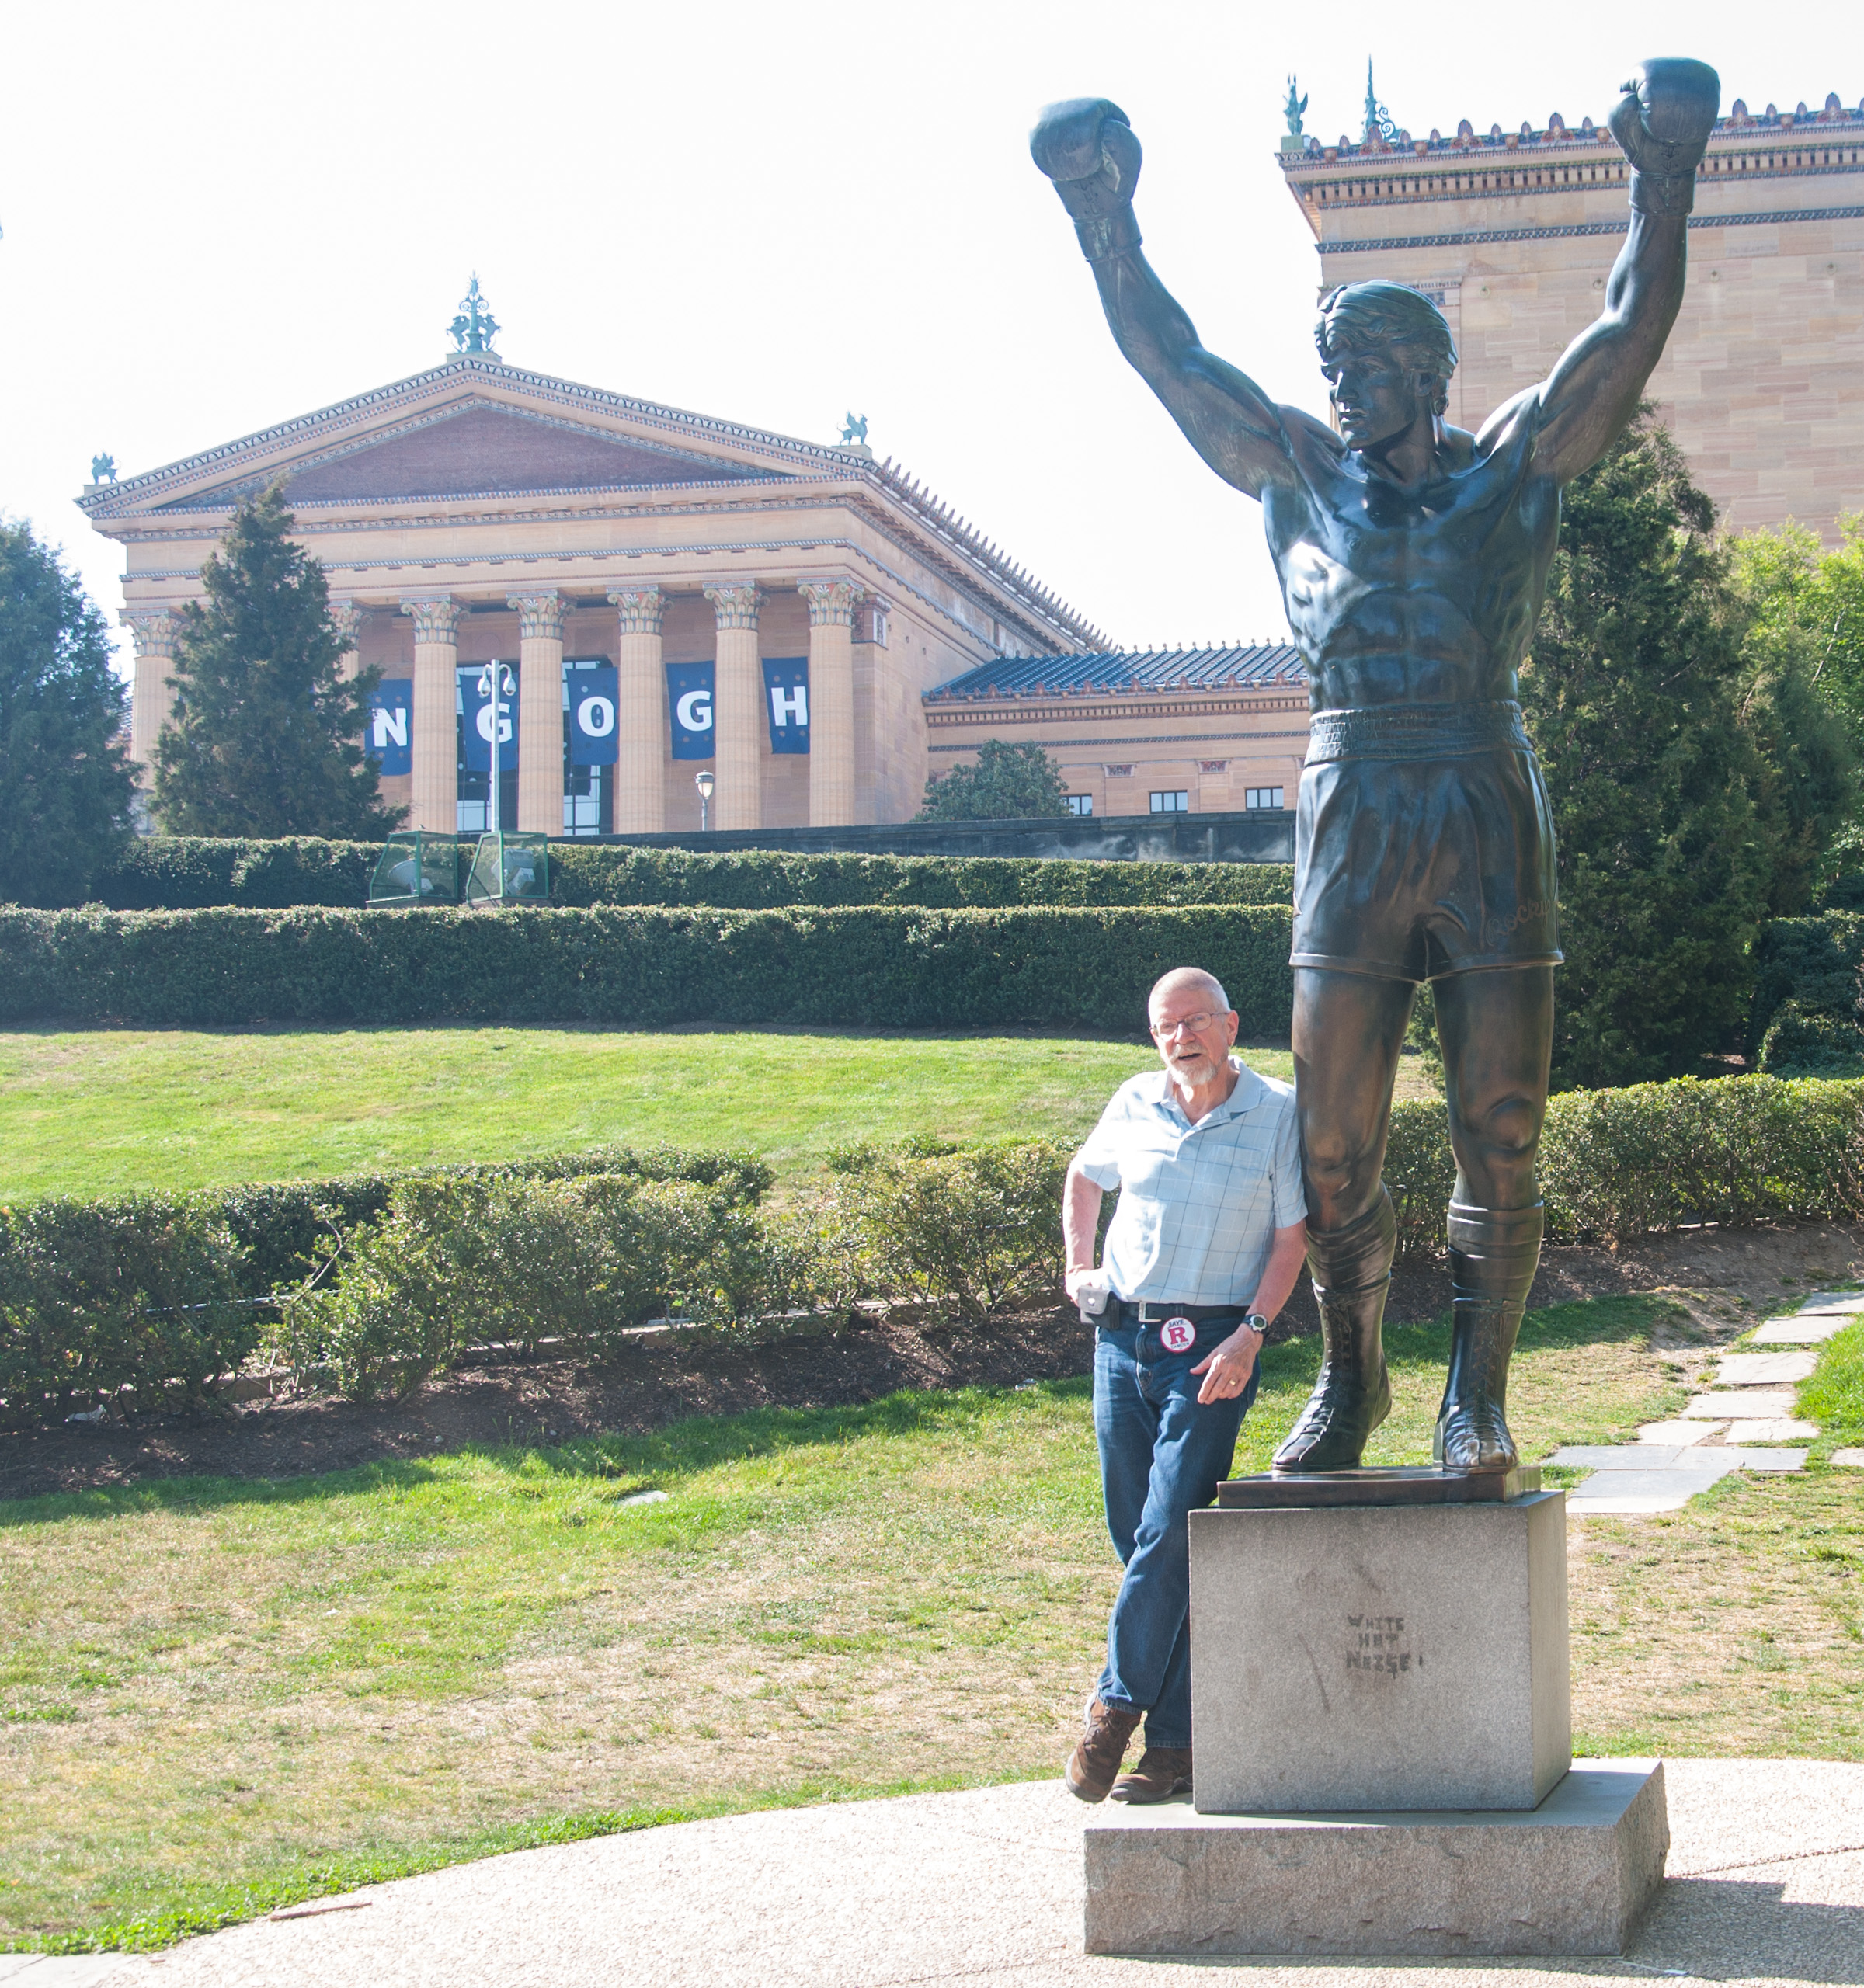 Nick @ Rocky Statue by Art Museum